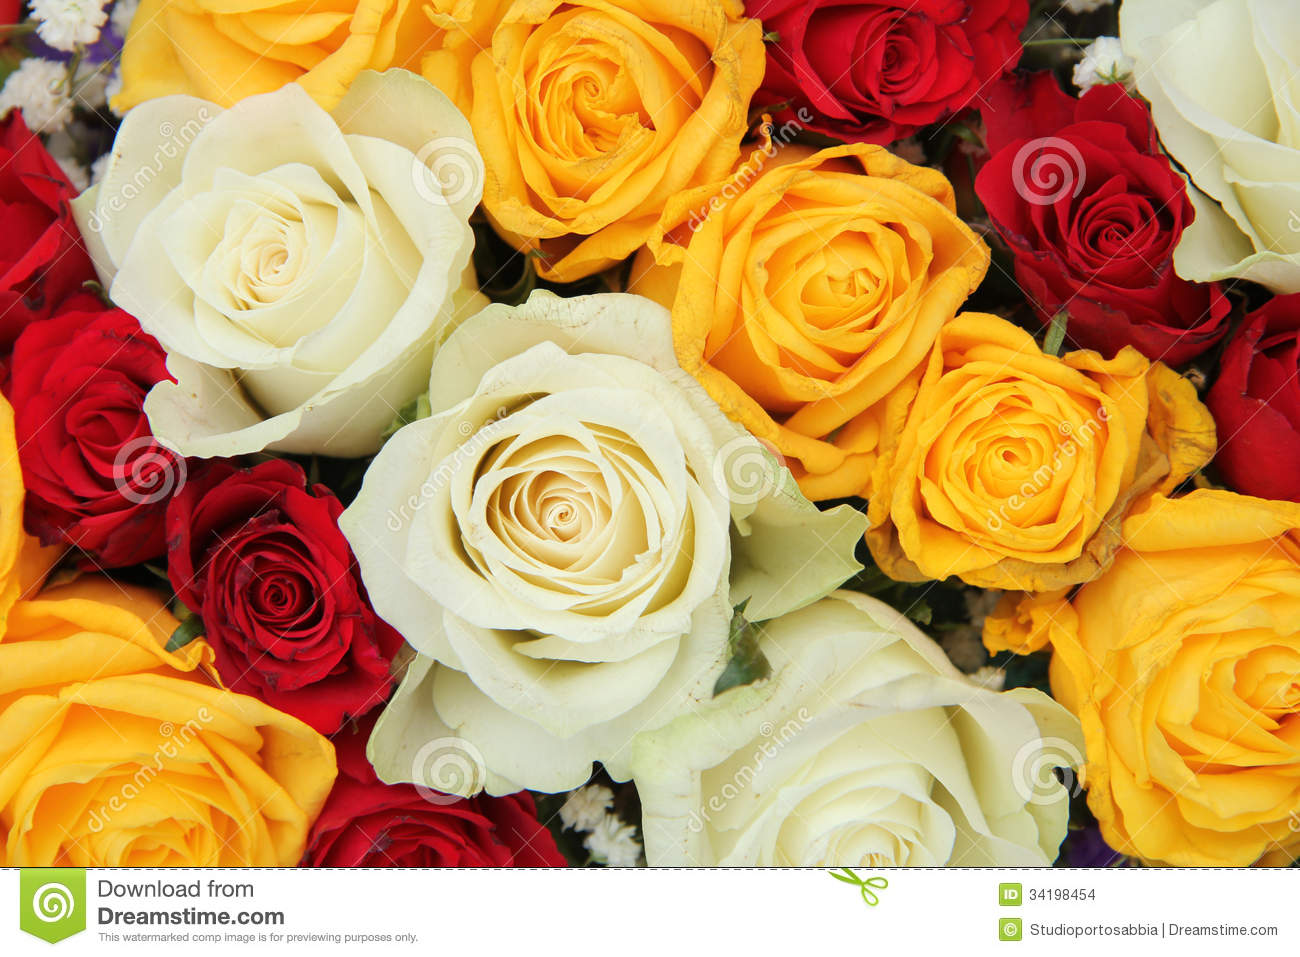 Yellow, White And Red Roses In A Wedding Arrangement Stock Photo ...